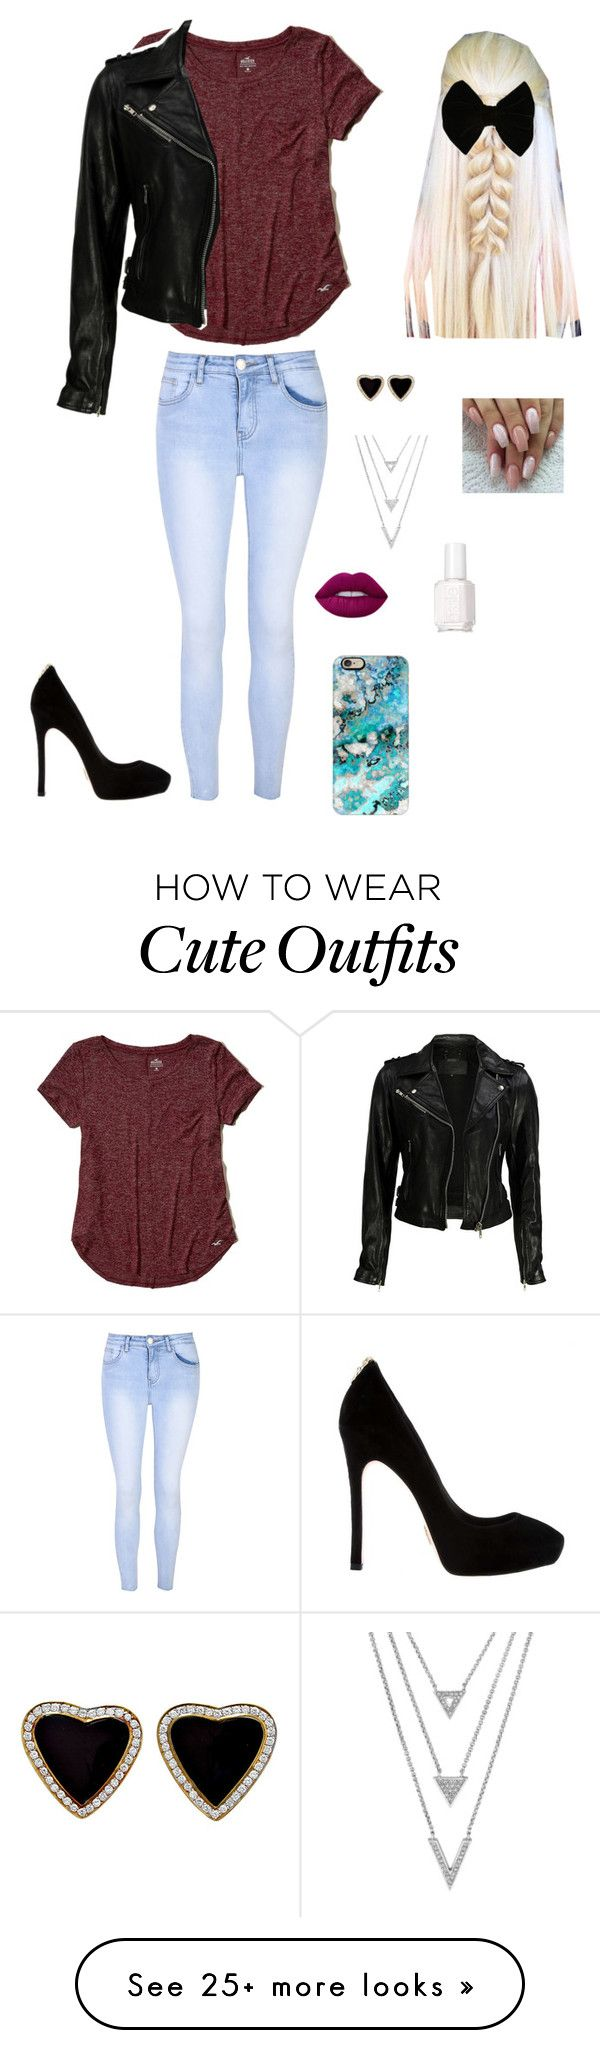 """Saturday outfit #2"" by fluffy2016 on Polyvore featuring Casetify, Glamorous, Hollister Co., VIPARO, Essie, Forever 21 and Lime Crime"